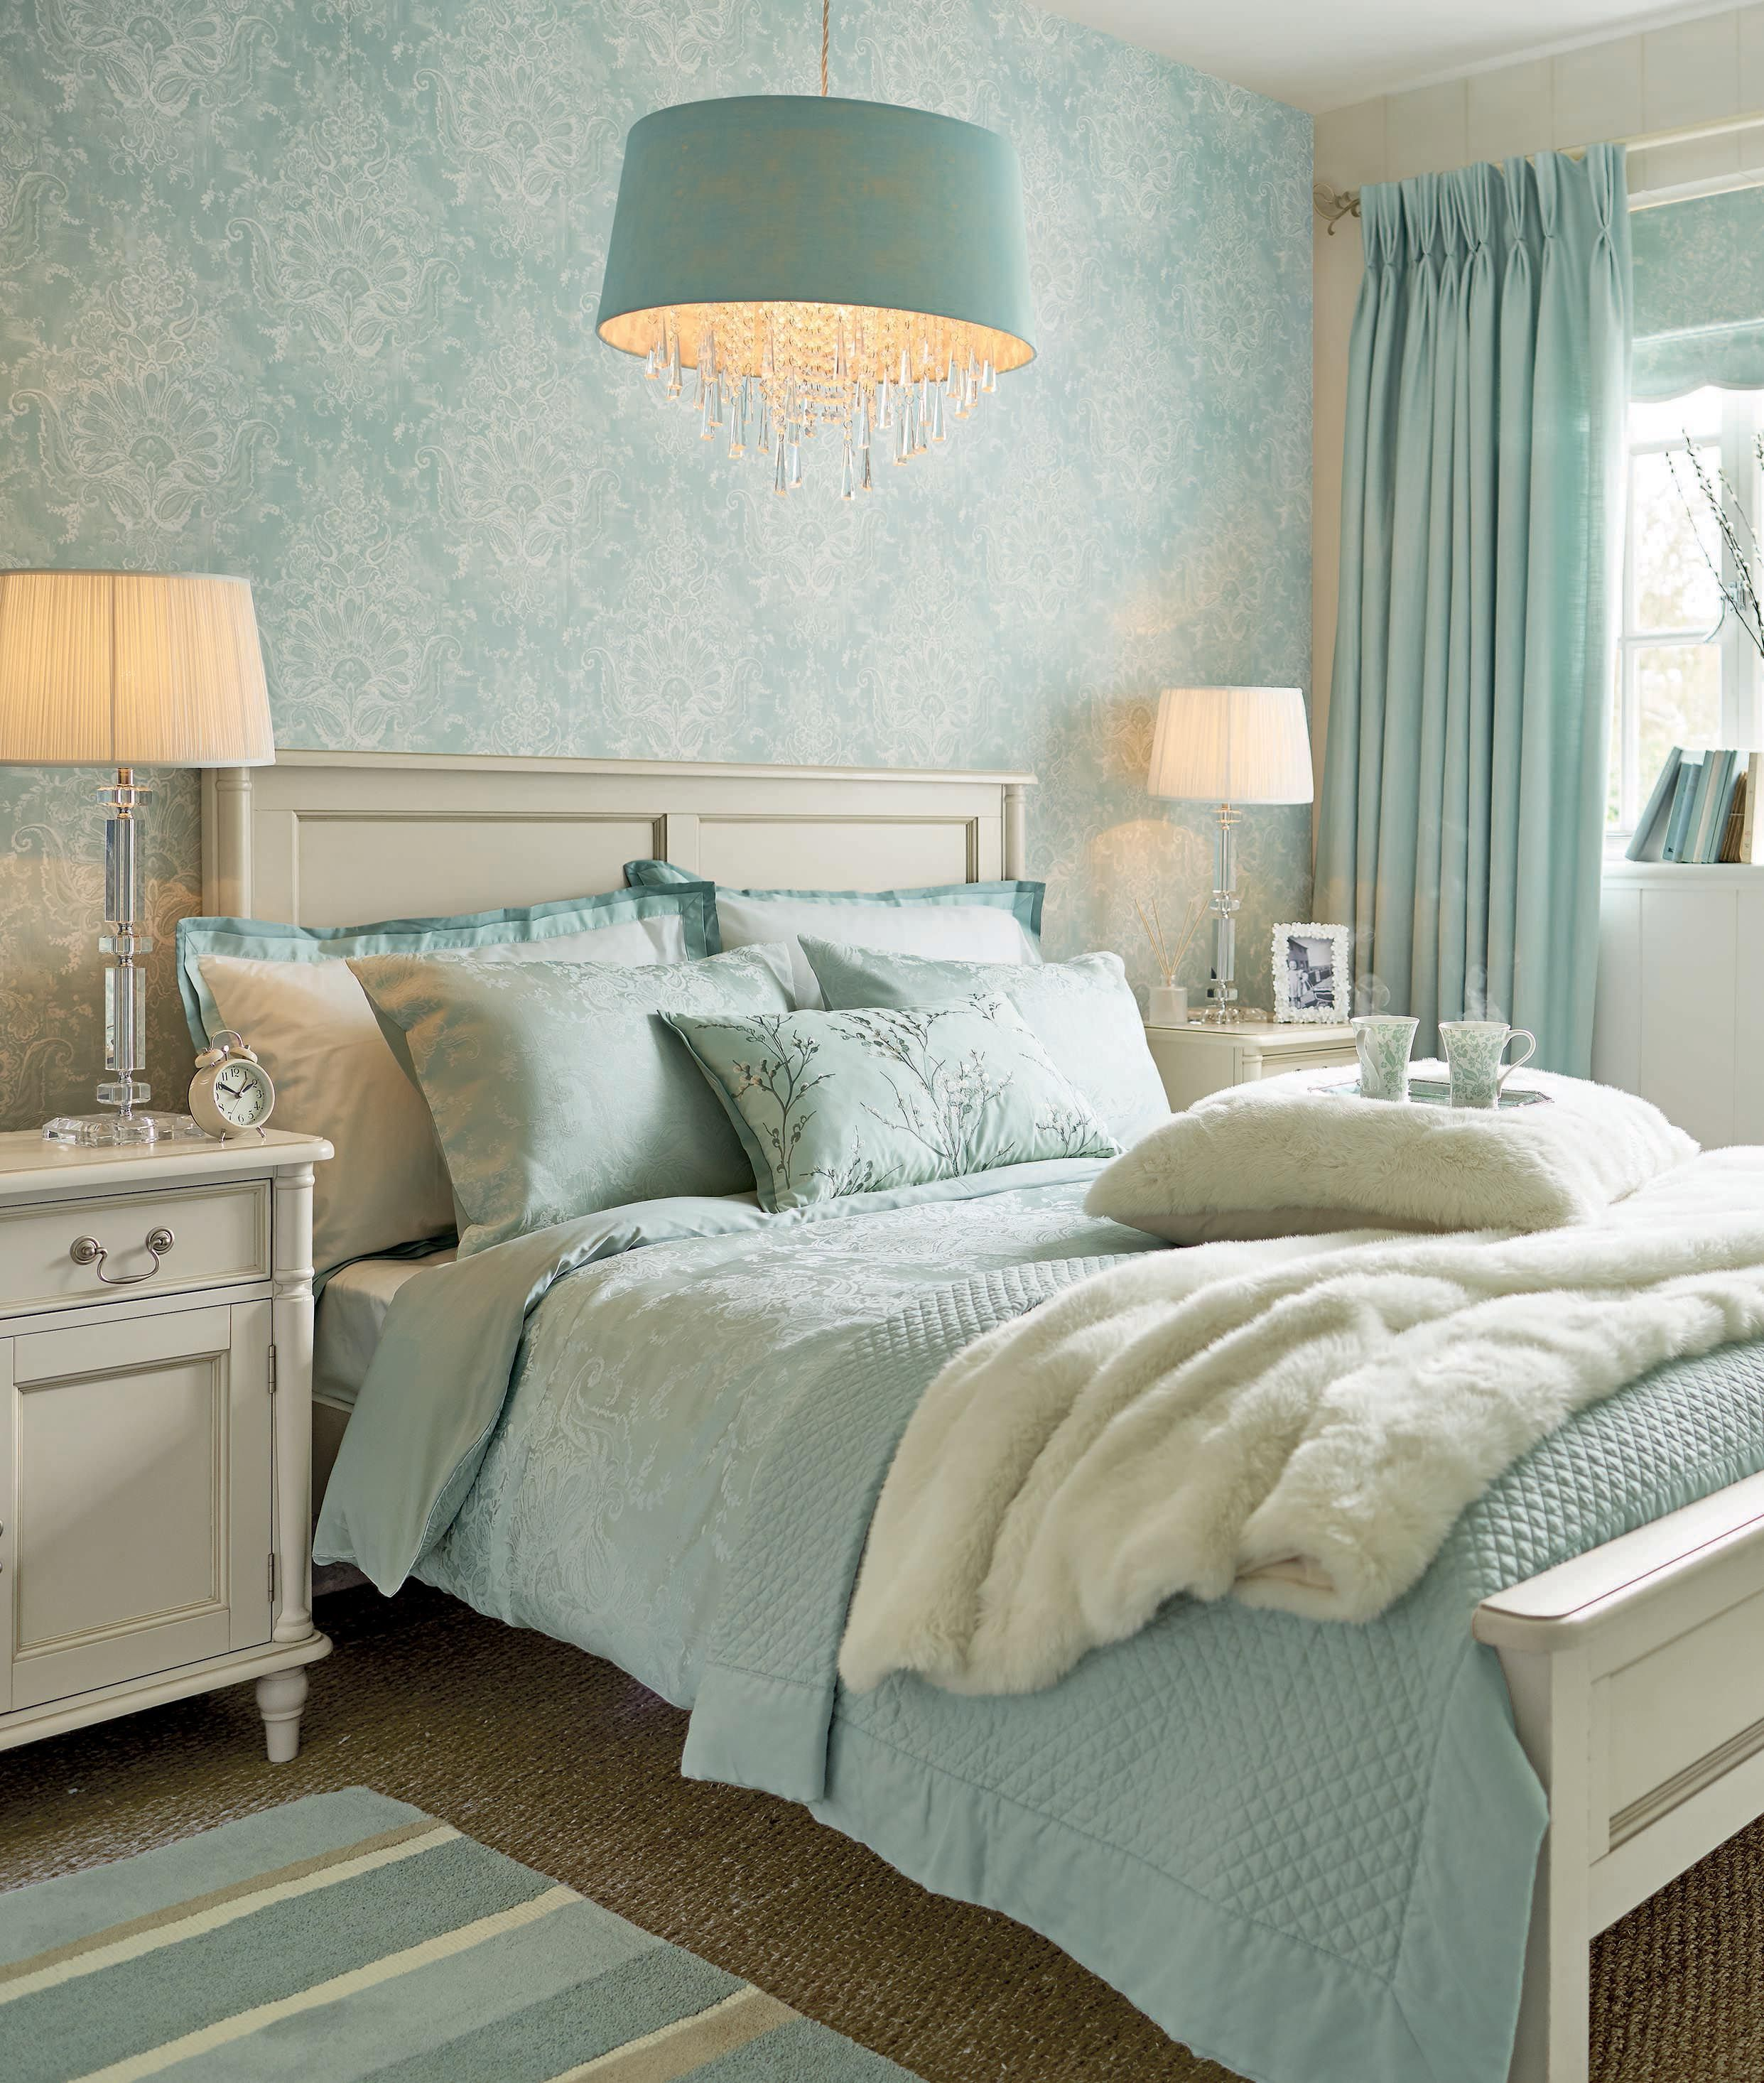 Duck Egg Blue Bedroom Pictures Bedroom Design Concept Vintage Bedroom Lighting Master Bedroom Design Nz: Duck Egg Blue Bedroom Ideas